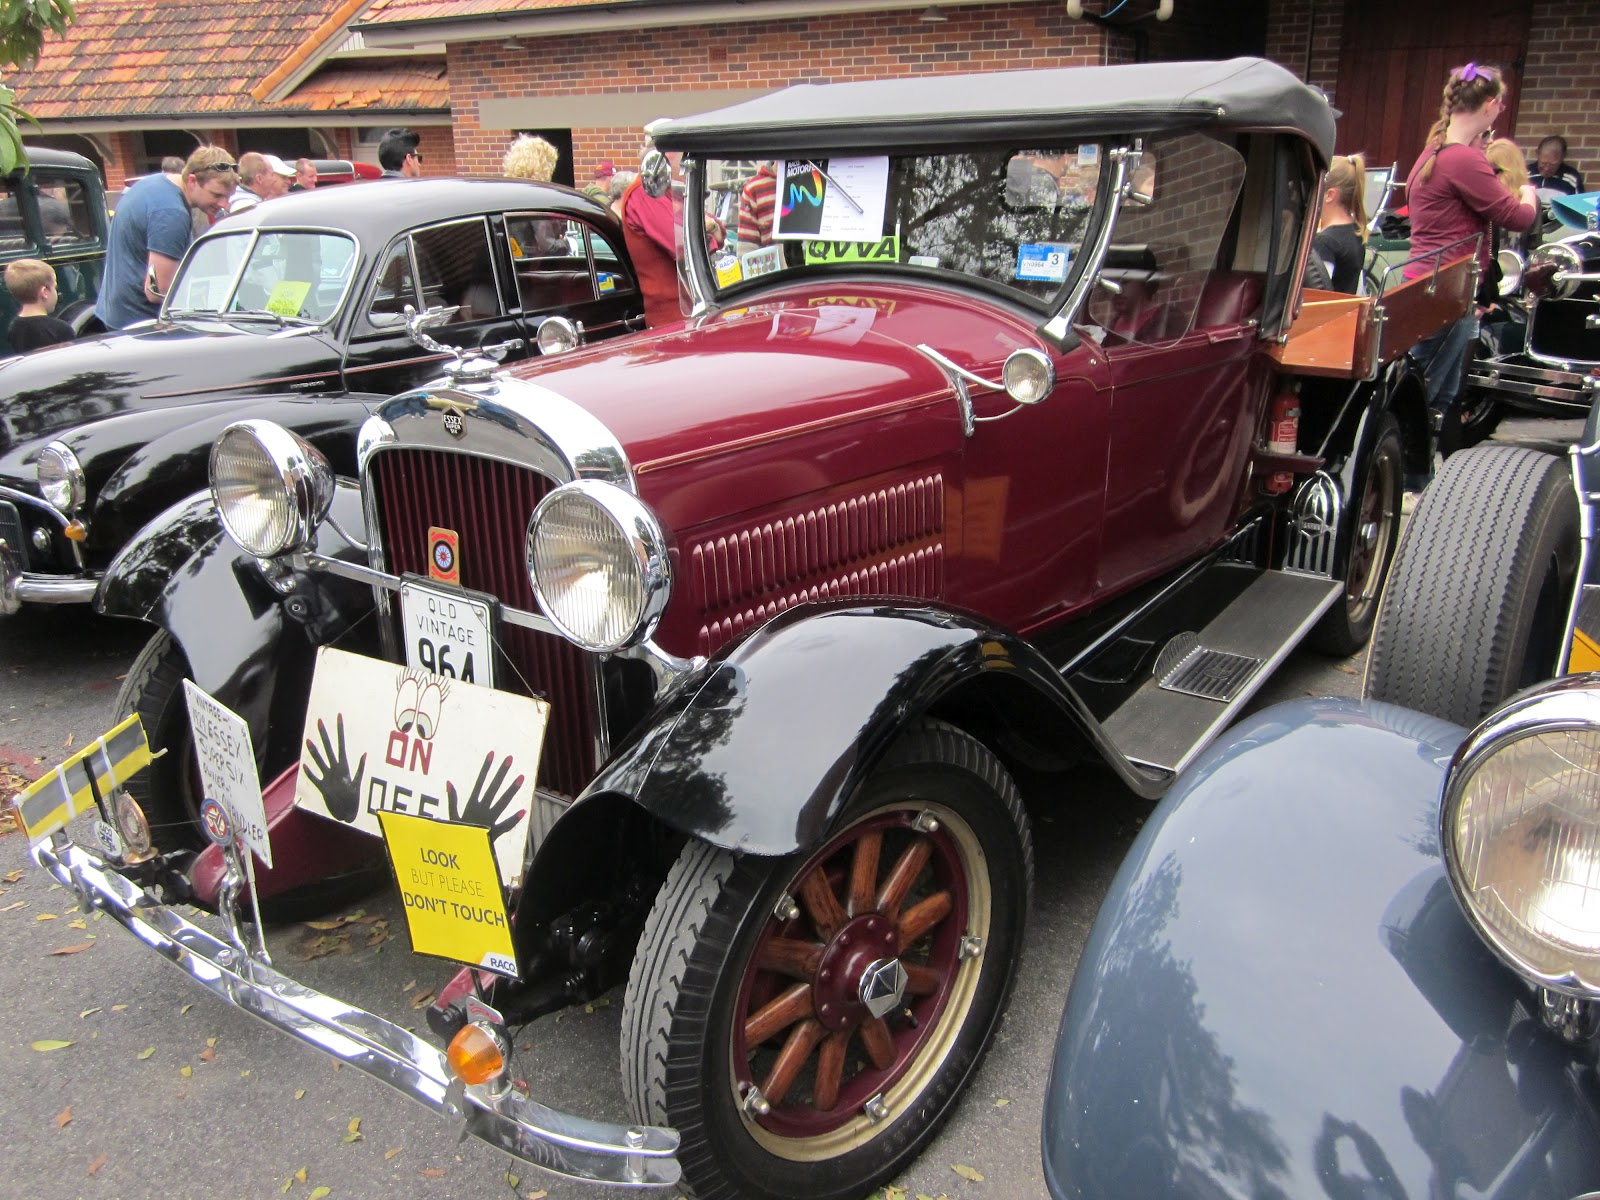 Johnnyfive Collectables: I Love Vintage Cars